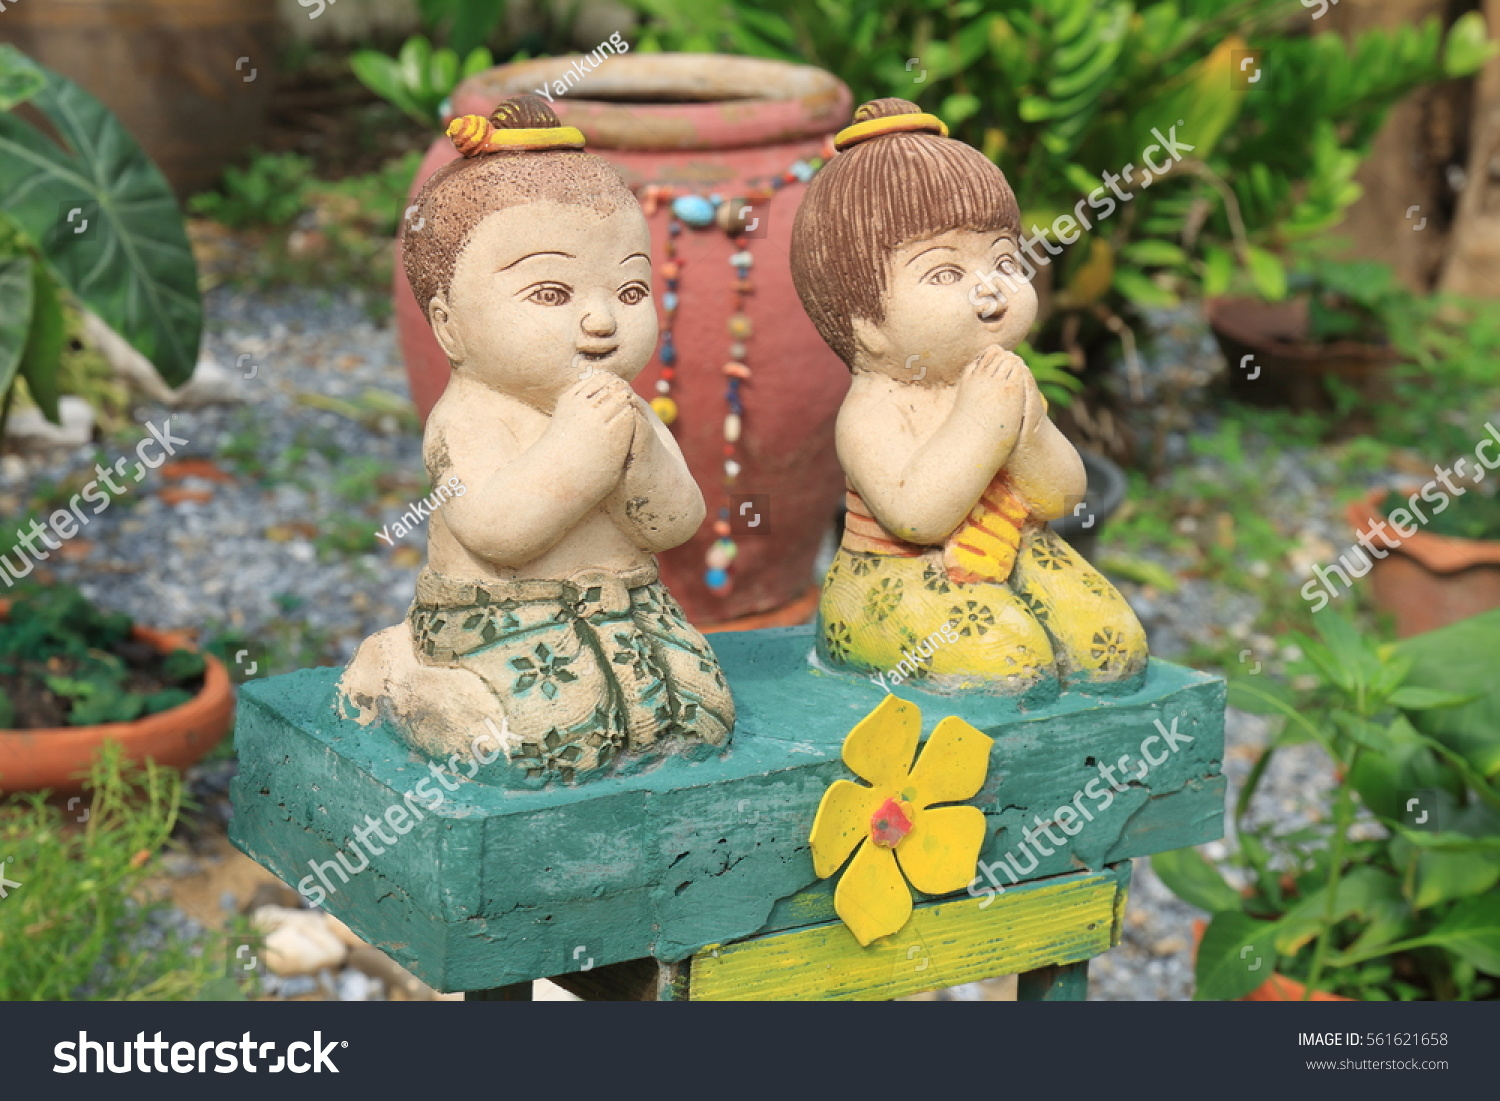 Porcelain thai doll on grass field stock photo 561621658 porcelain thai doll on grass field with hands pressed together in traditional thai greeting gesture kristyandbryce Images